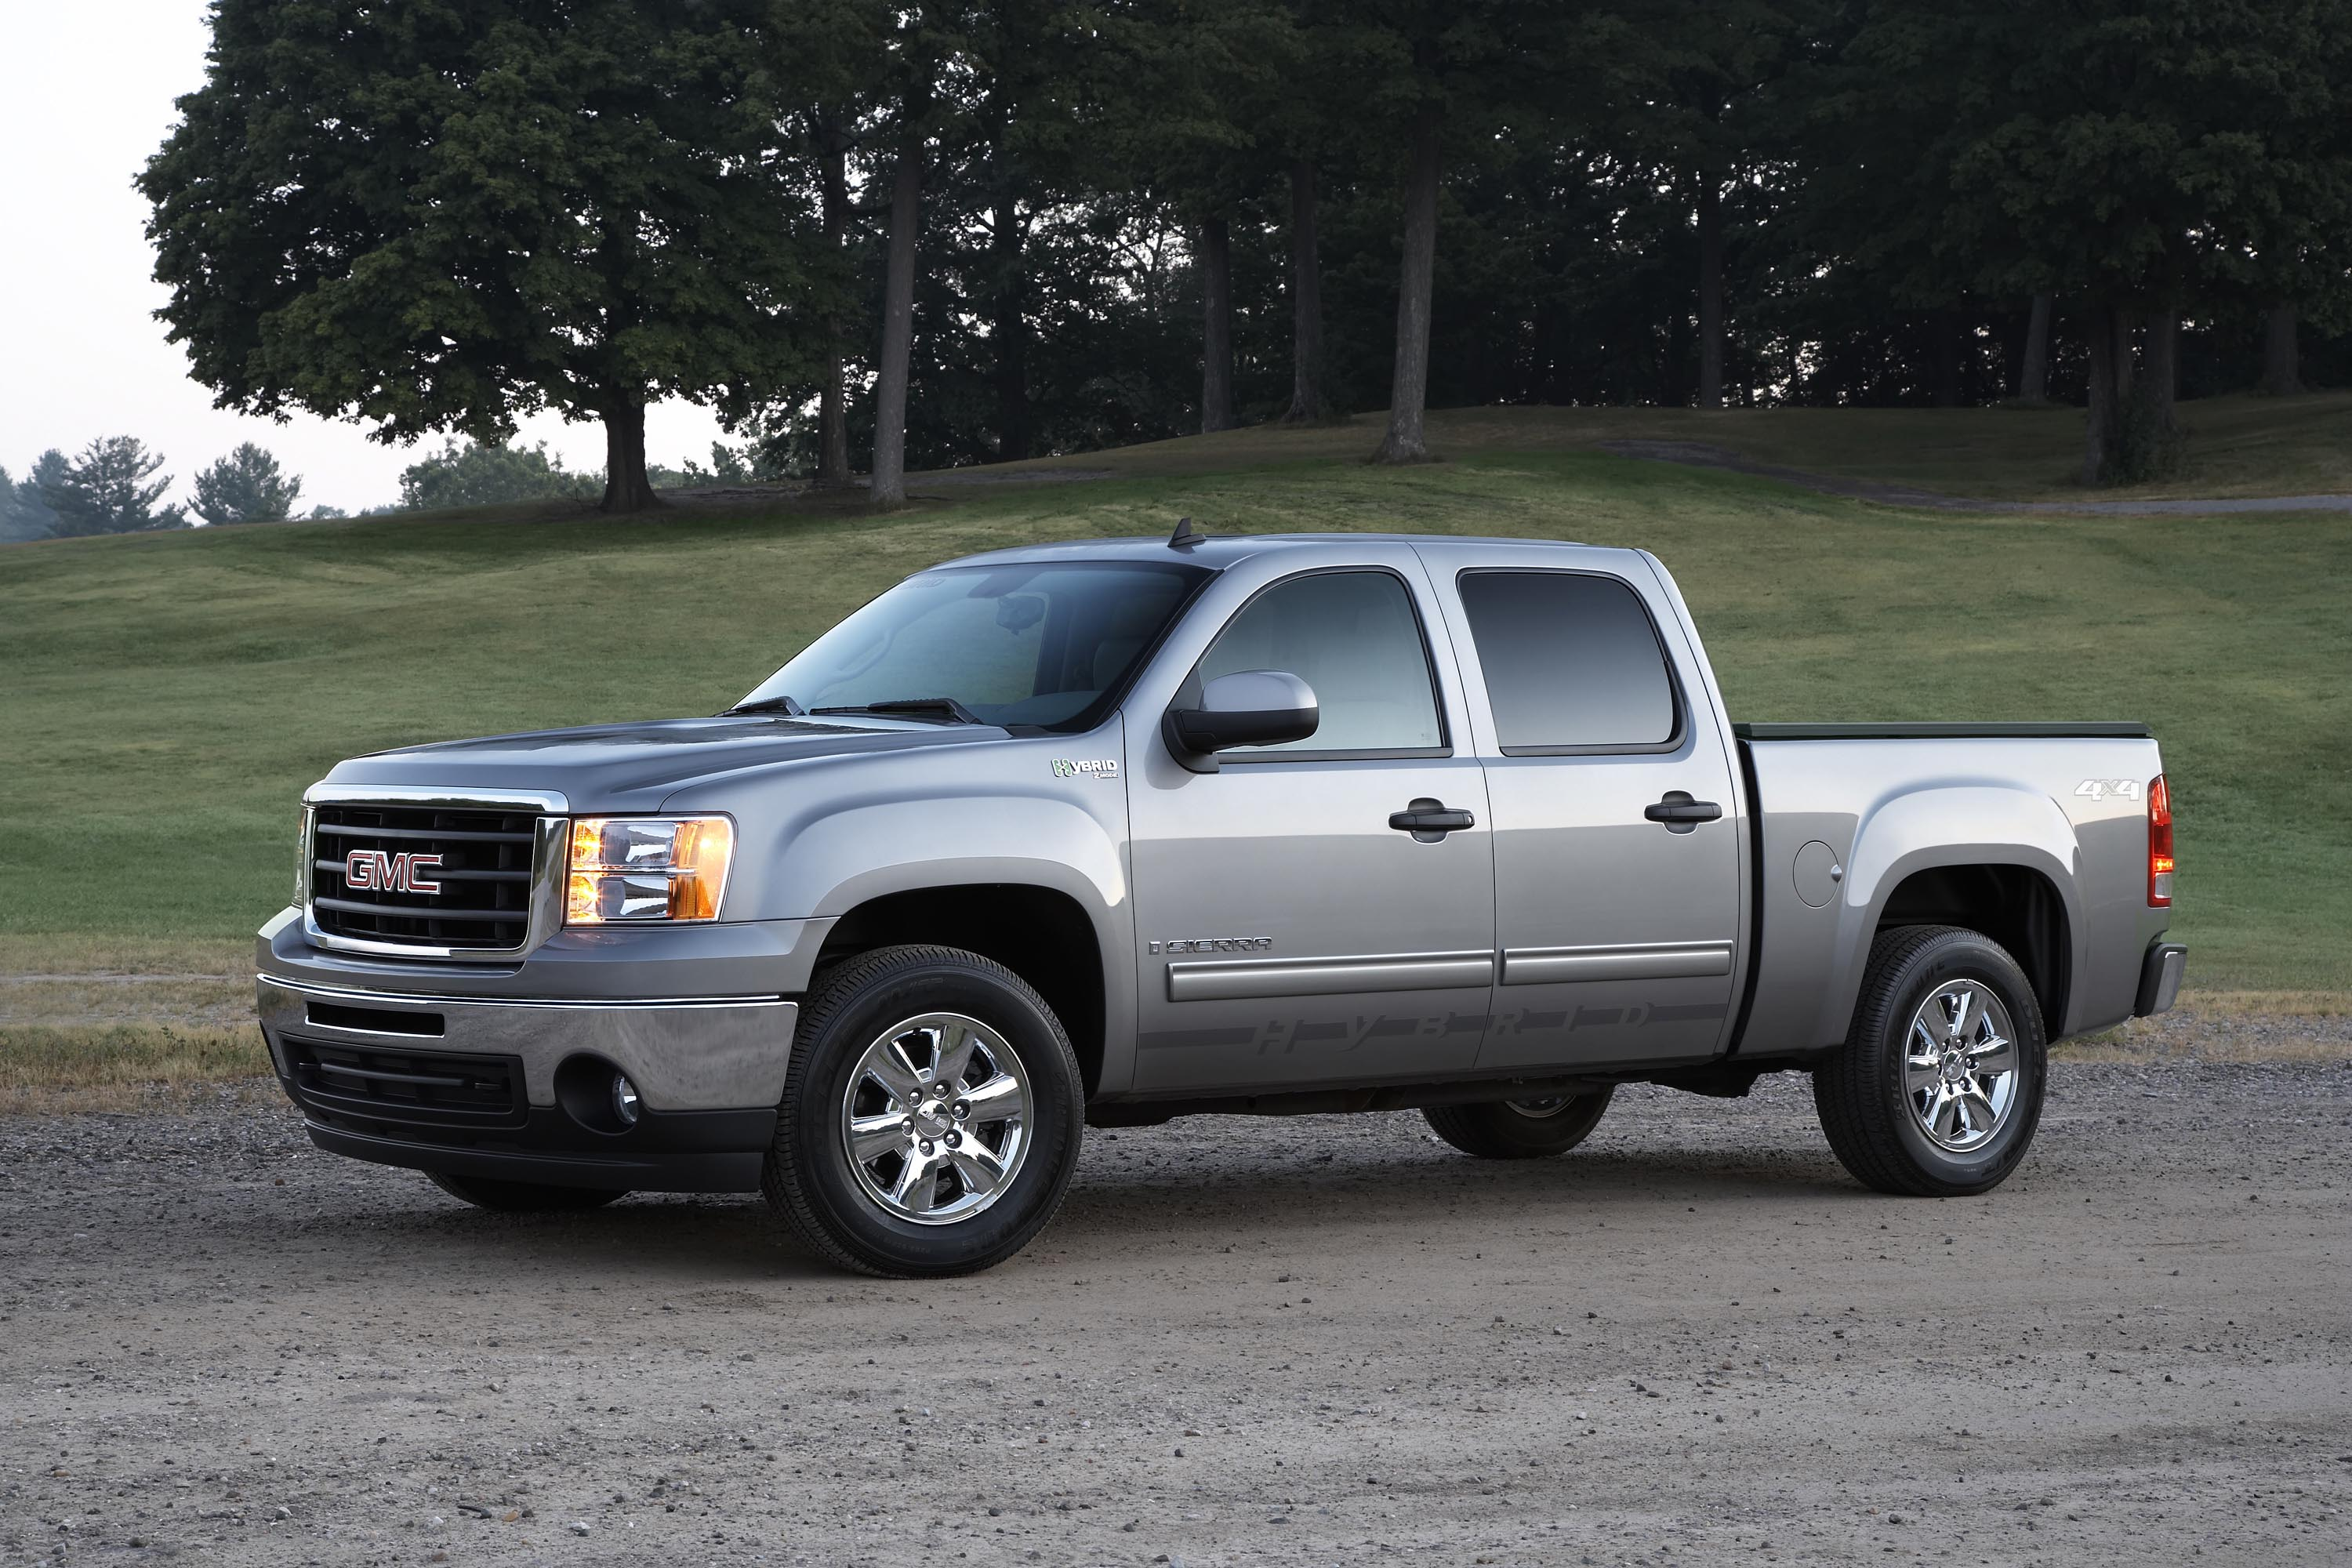 Gm Introduces More Hybrid Models Cadillac Escalade And Gmc Chevy Pickups Join Mix